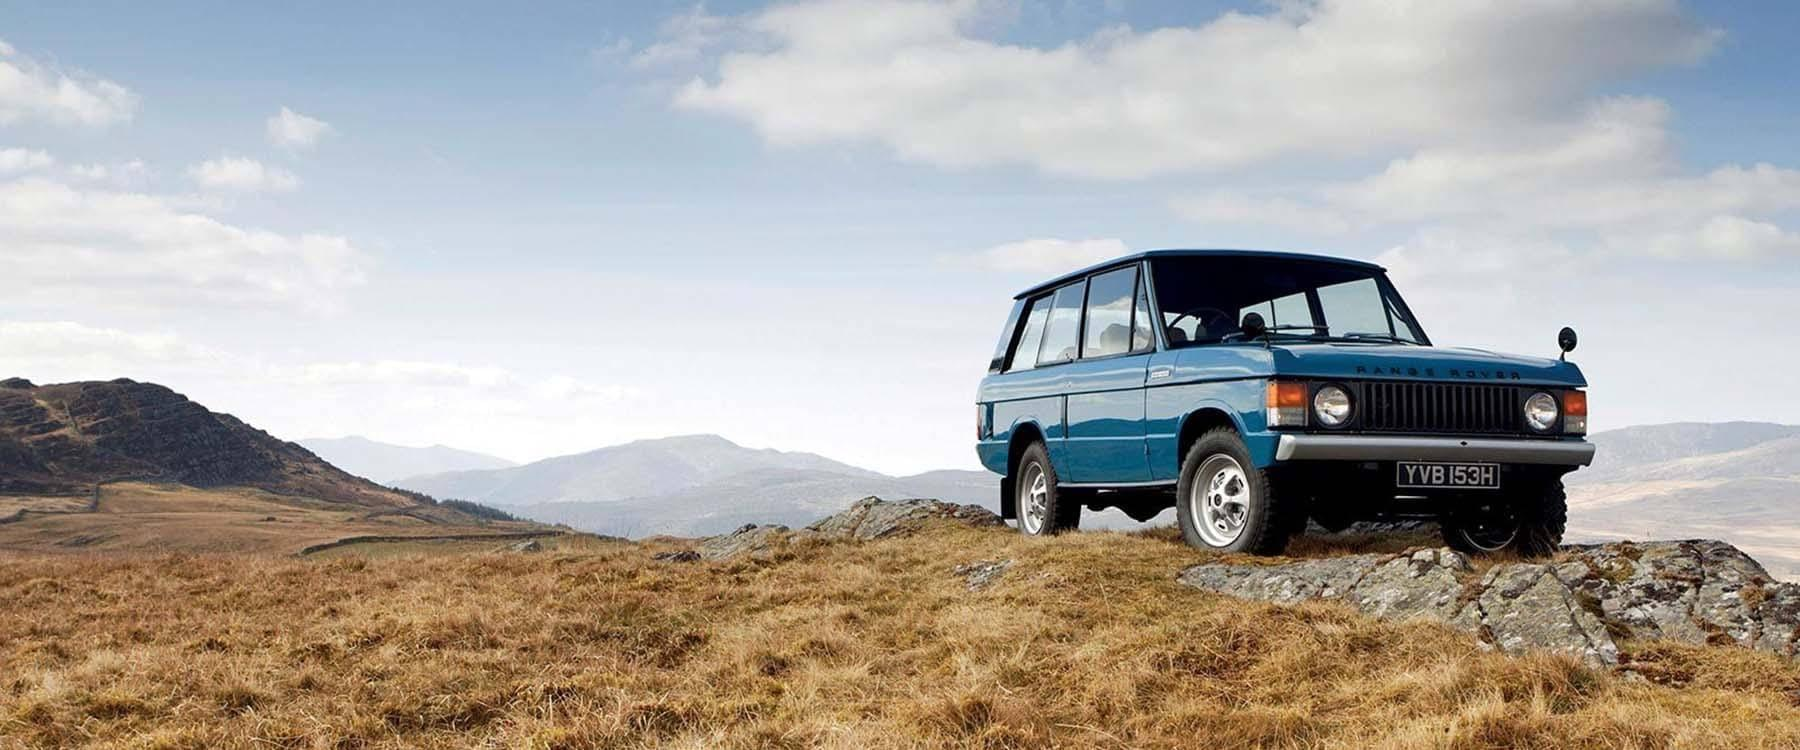 Land Rover Range Rover Heritage Classic